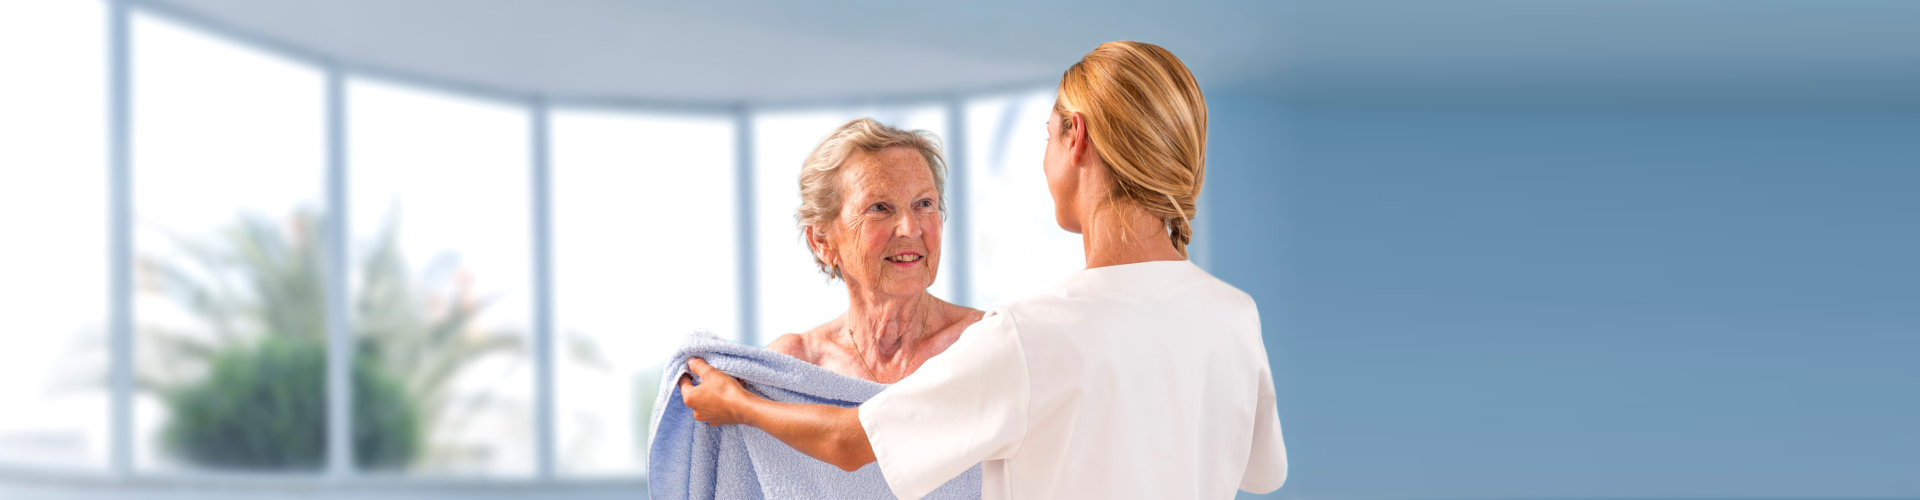 female caregiver giving towel to her old woman patient